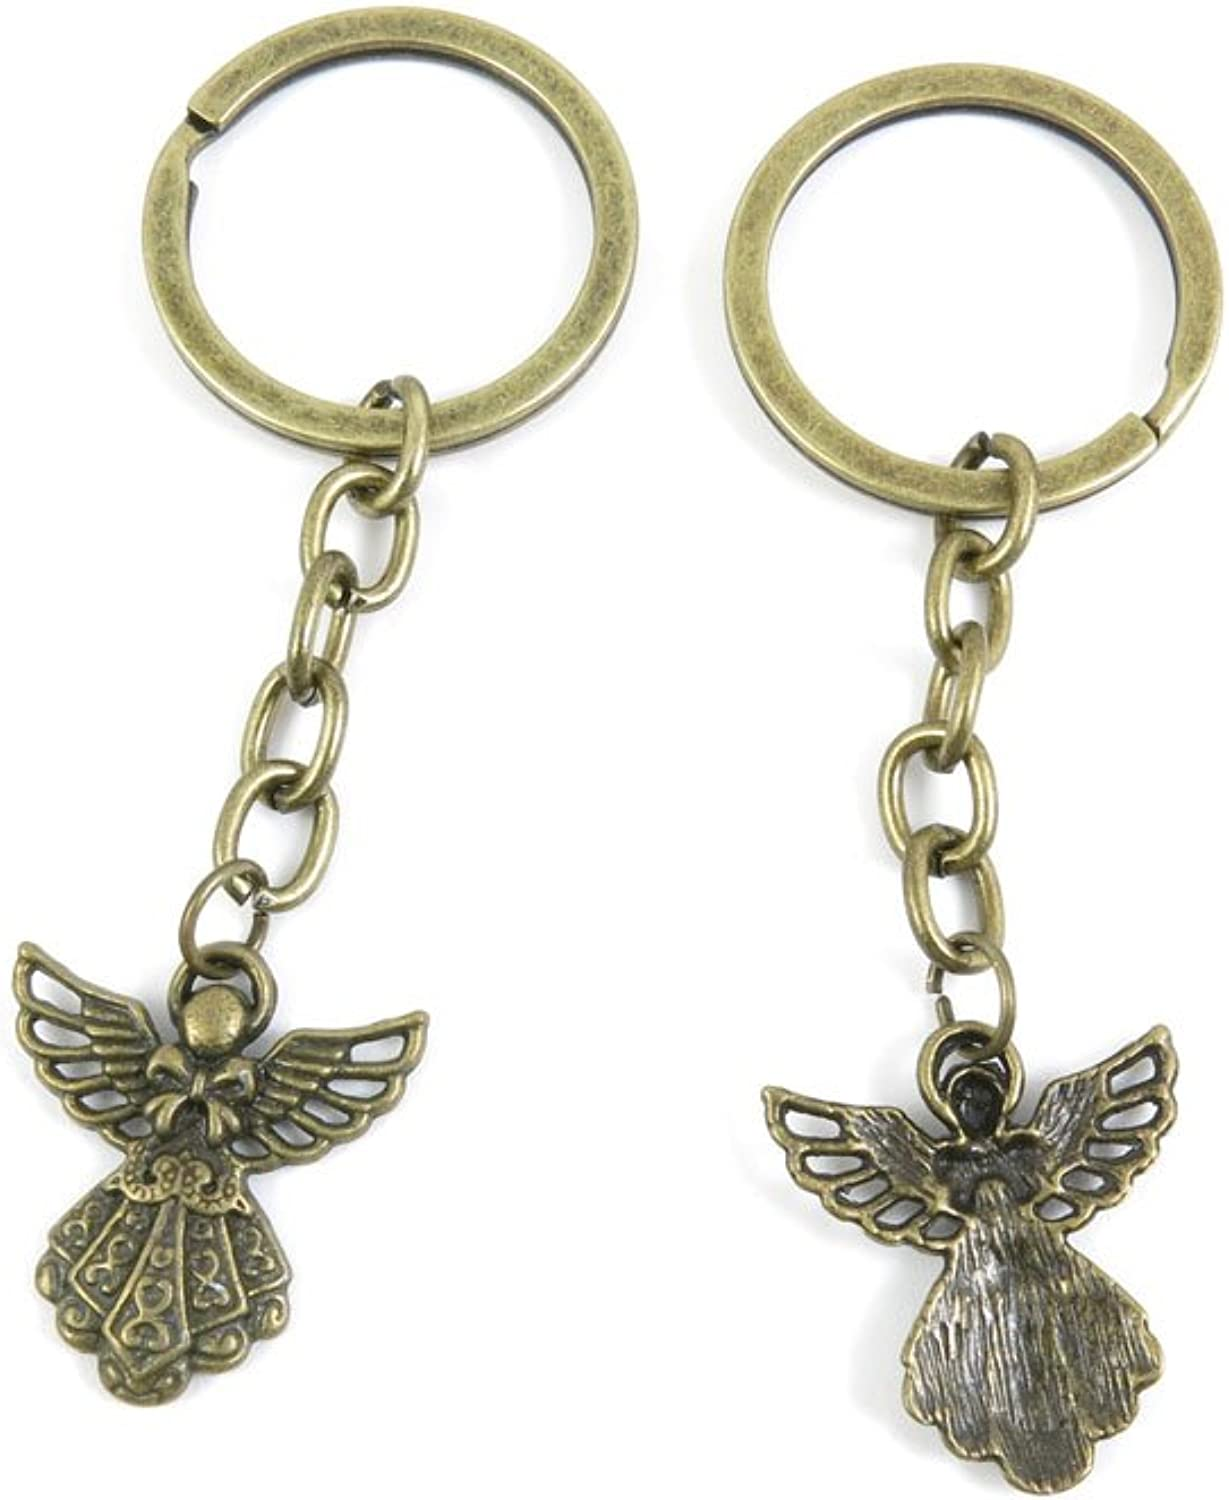 100 PCS Keyrings Keychains Key Ring Chains Tags Jewelry Findings Clasps Buckles Supplies D4SU2 Elf Bow Tie Angel